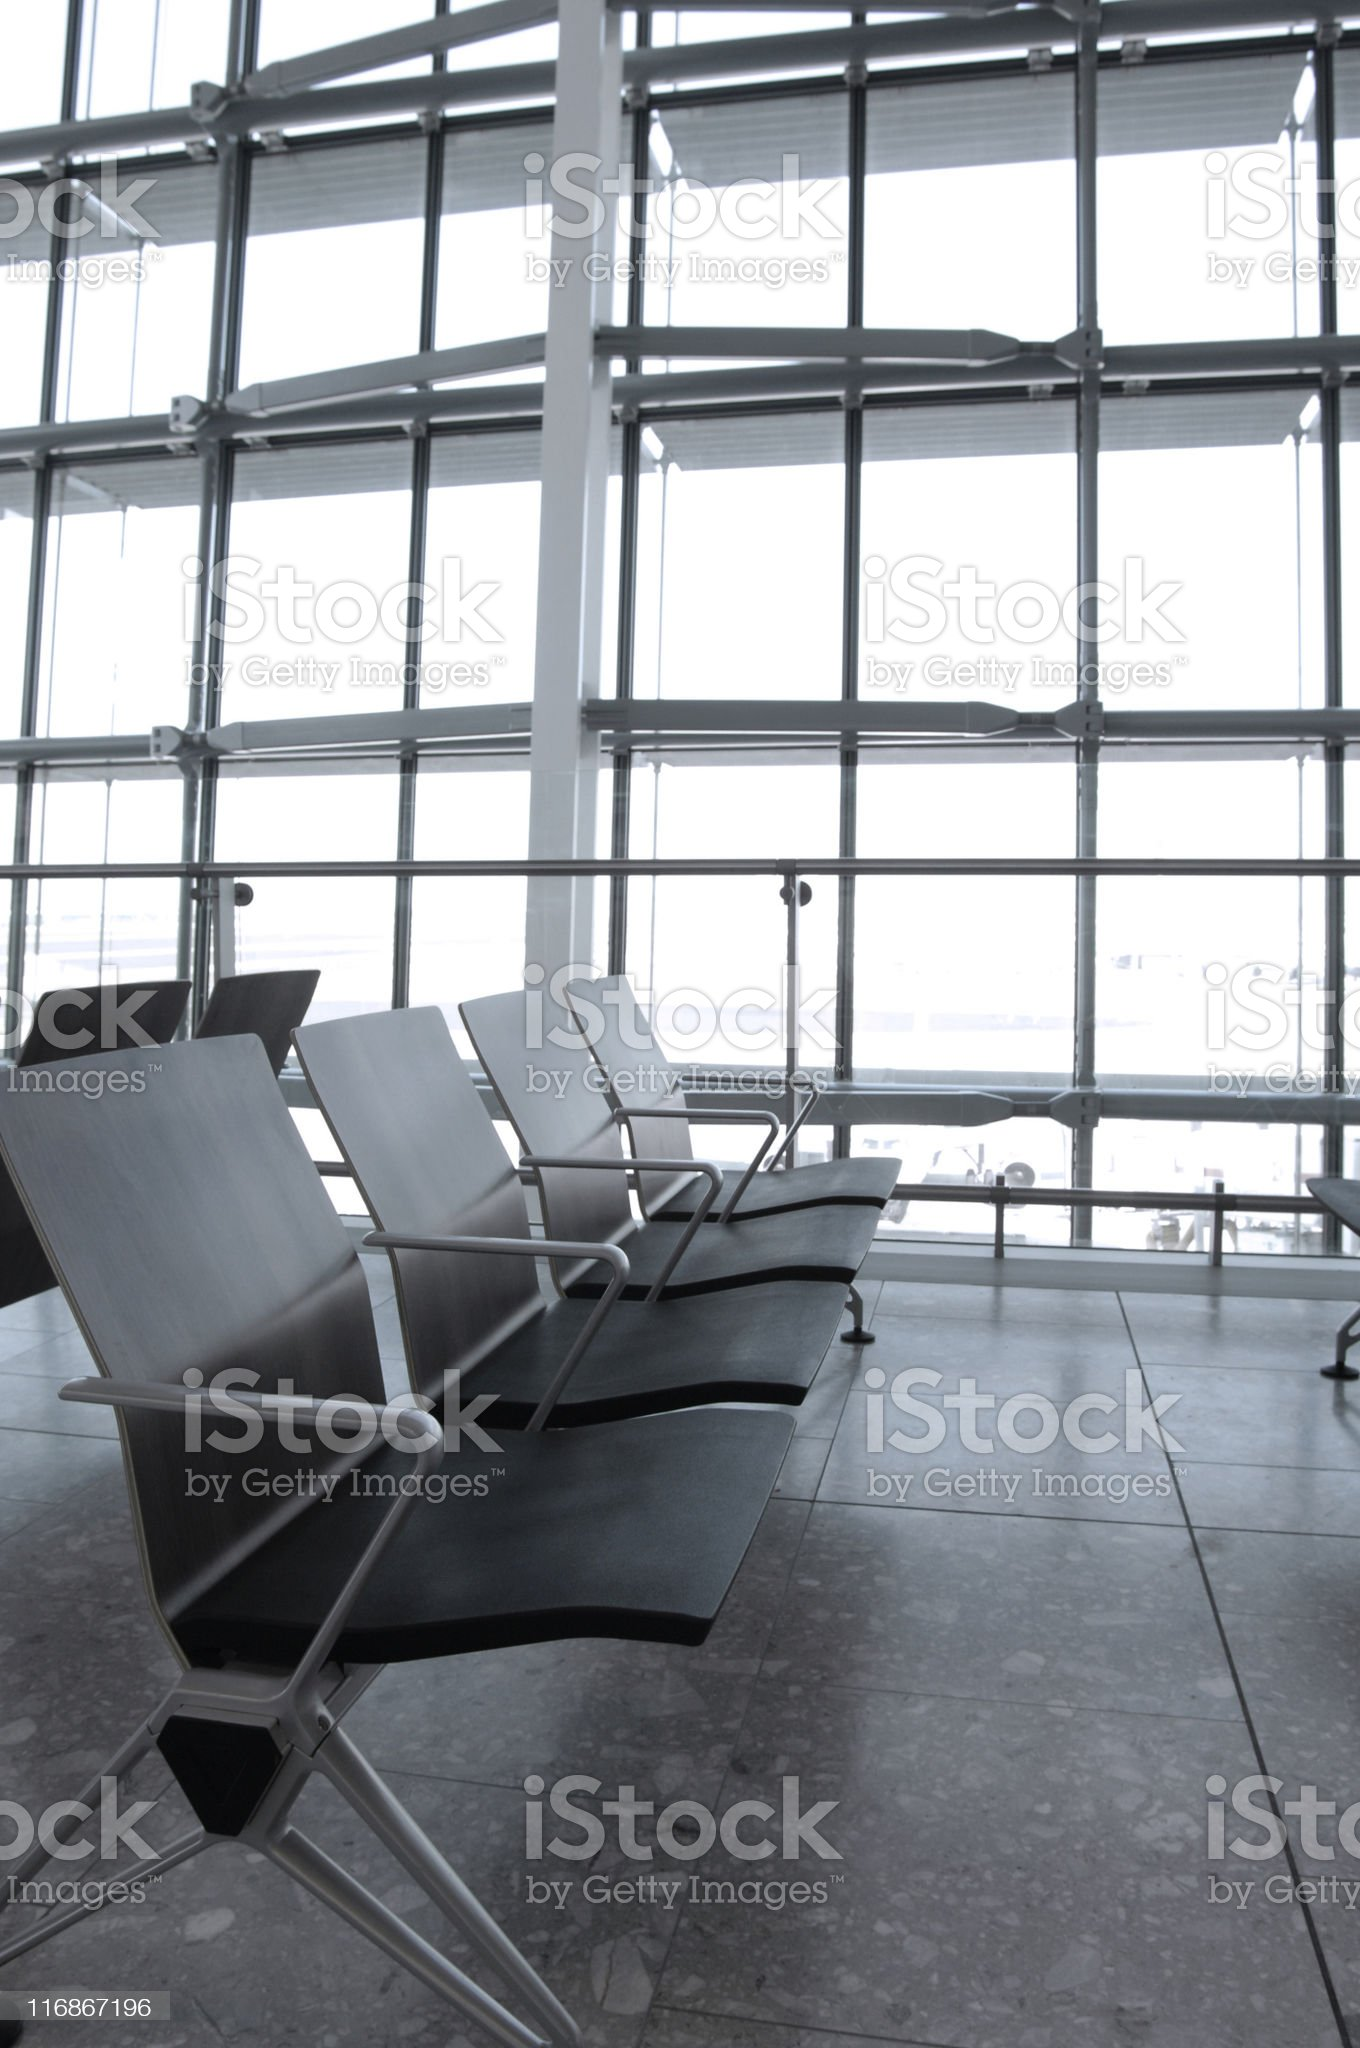 Airport terminal seating royalty-free stock photo